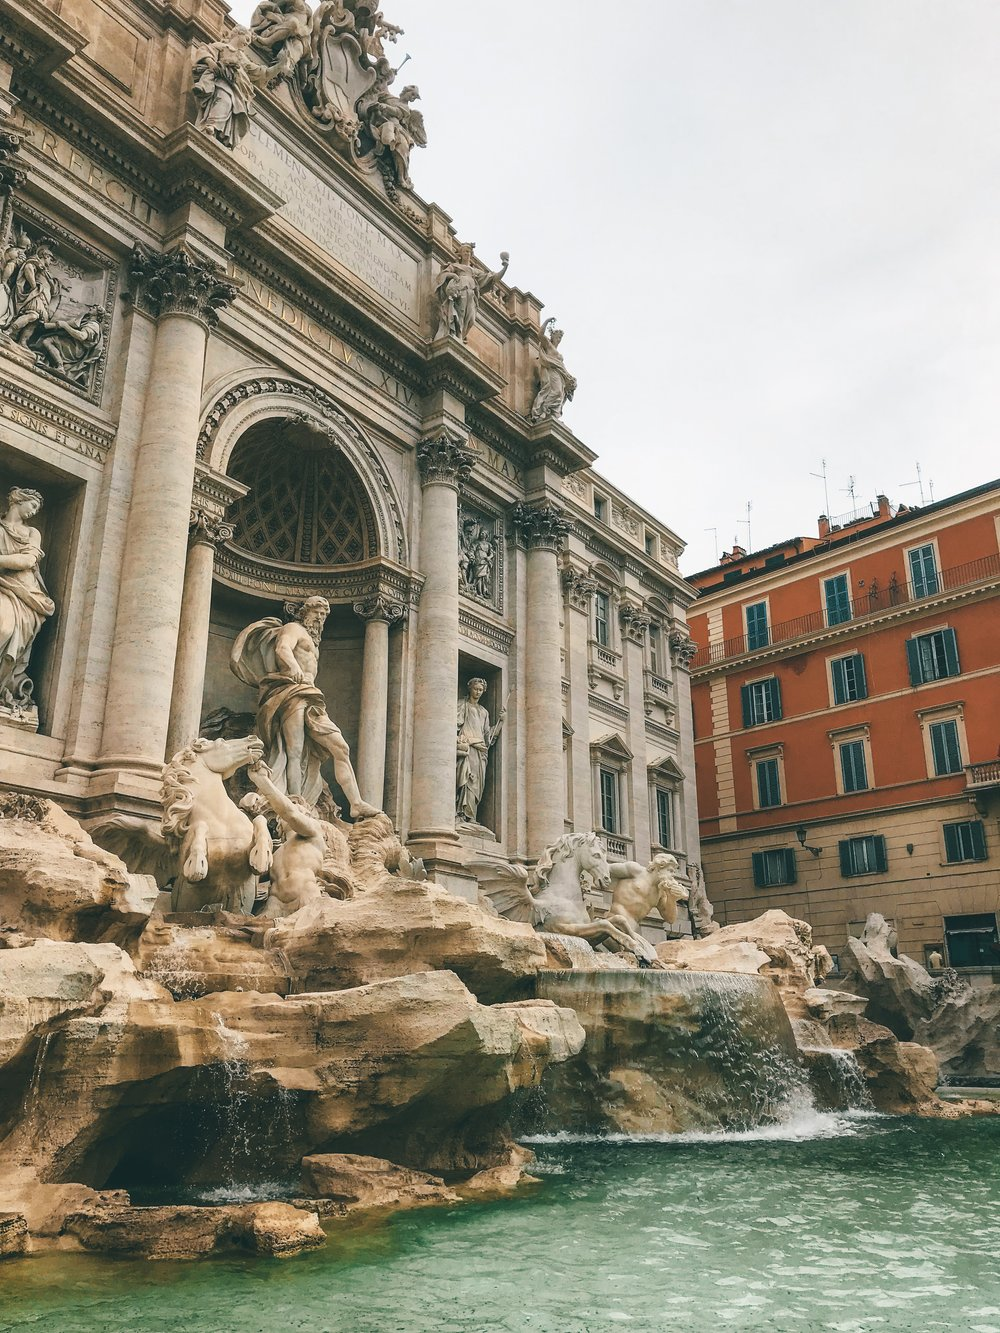 The Trevi Fountain by Day